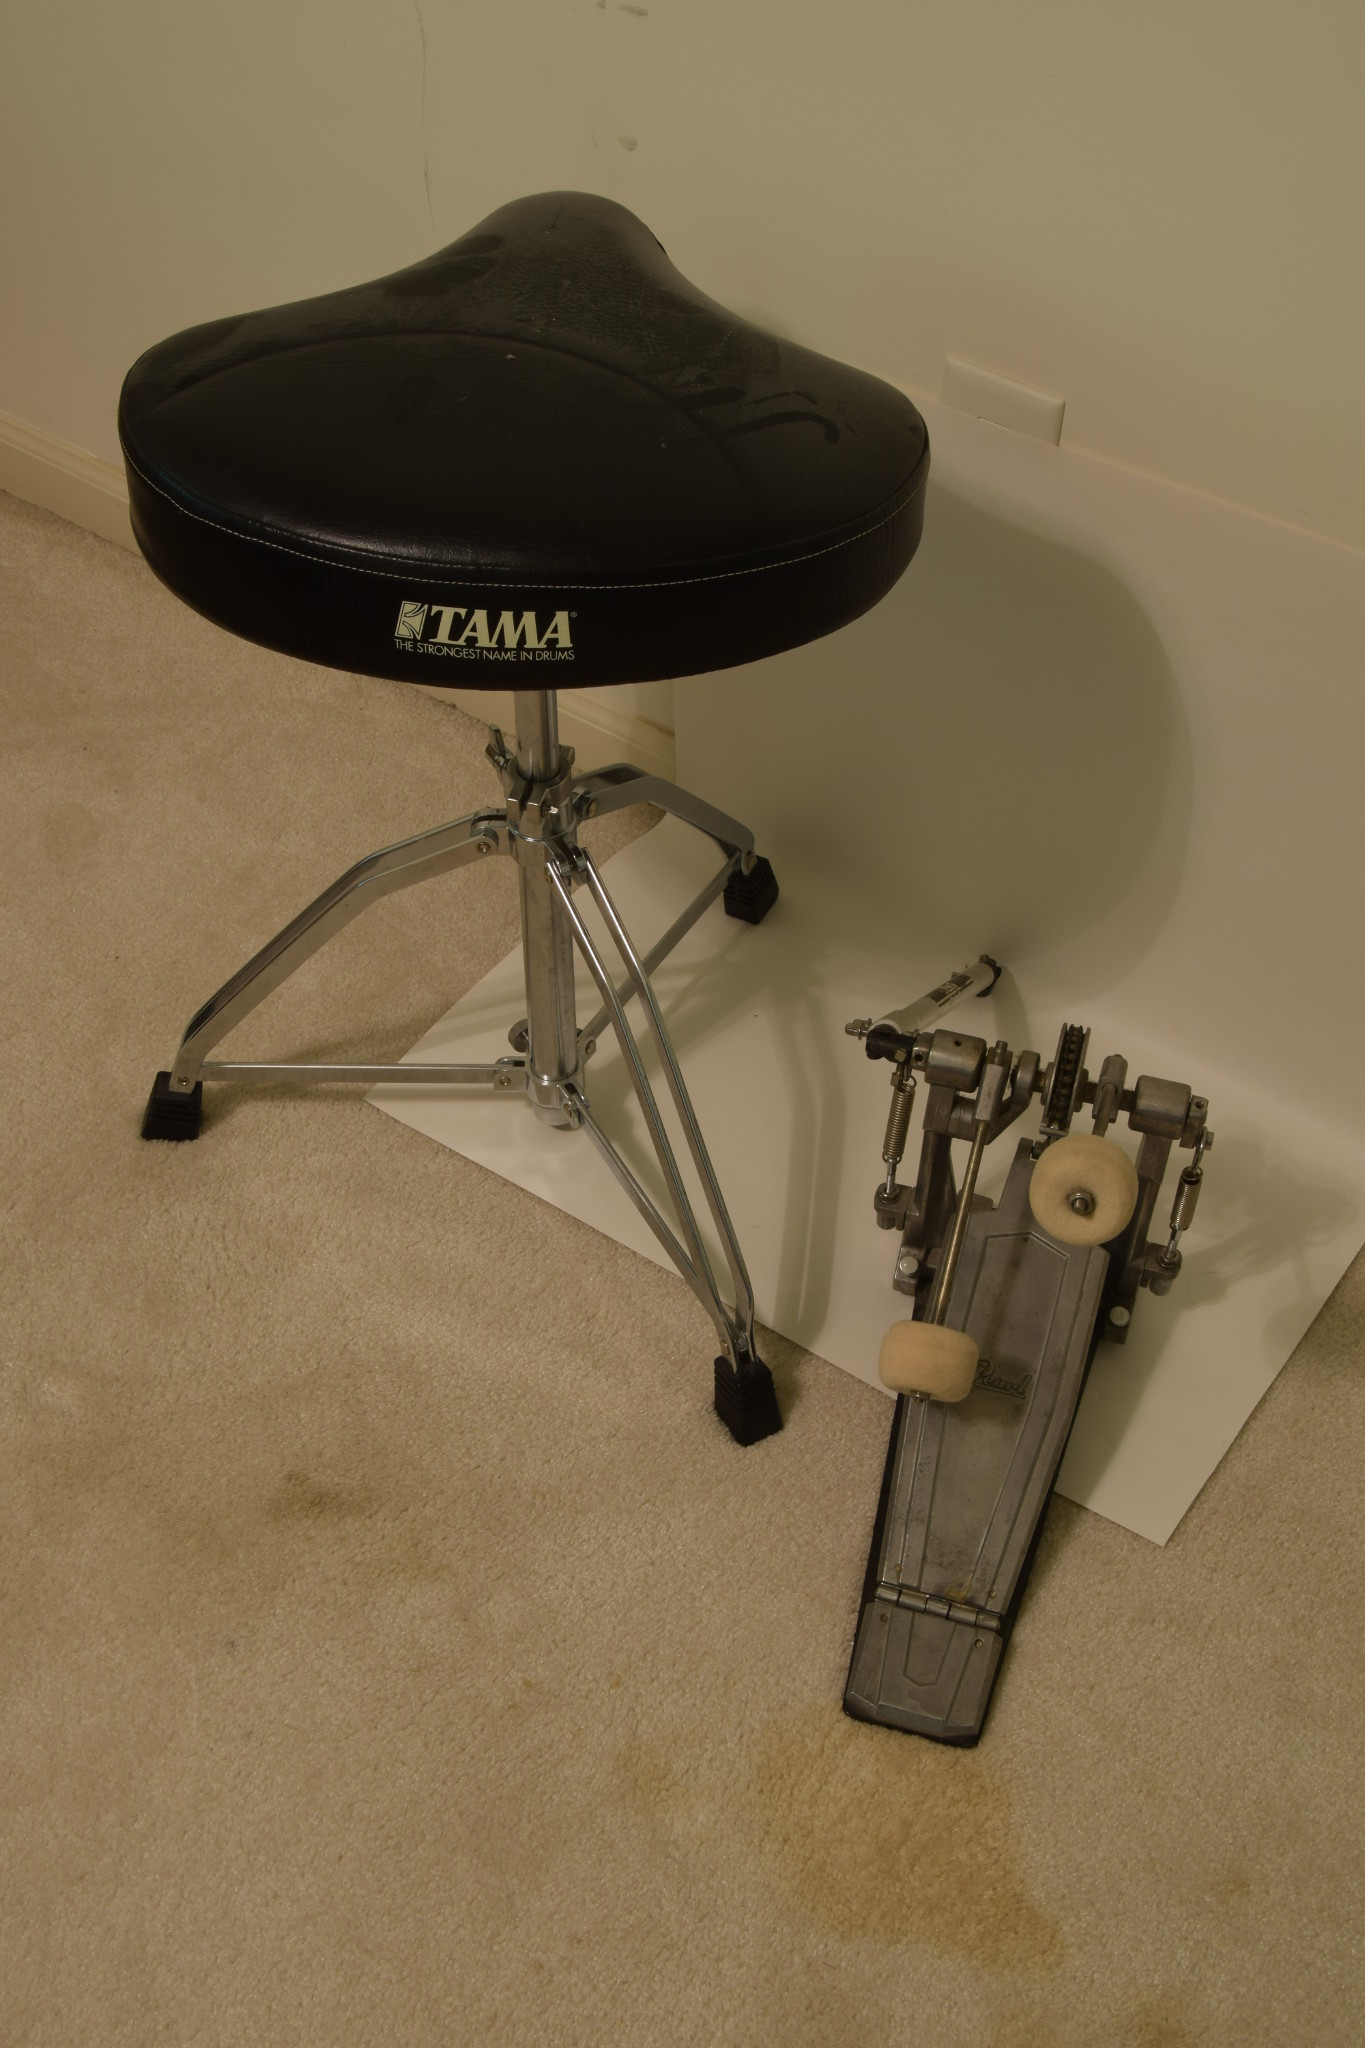 Craigslist Twin Cities >> Used Drum Set for Sale in the Twin Cities – LinuxPhoto